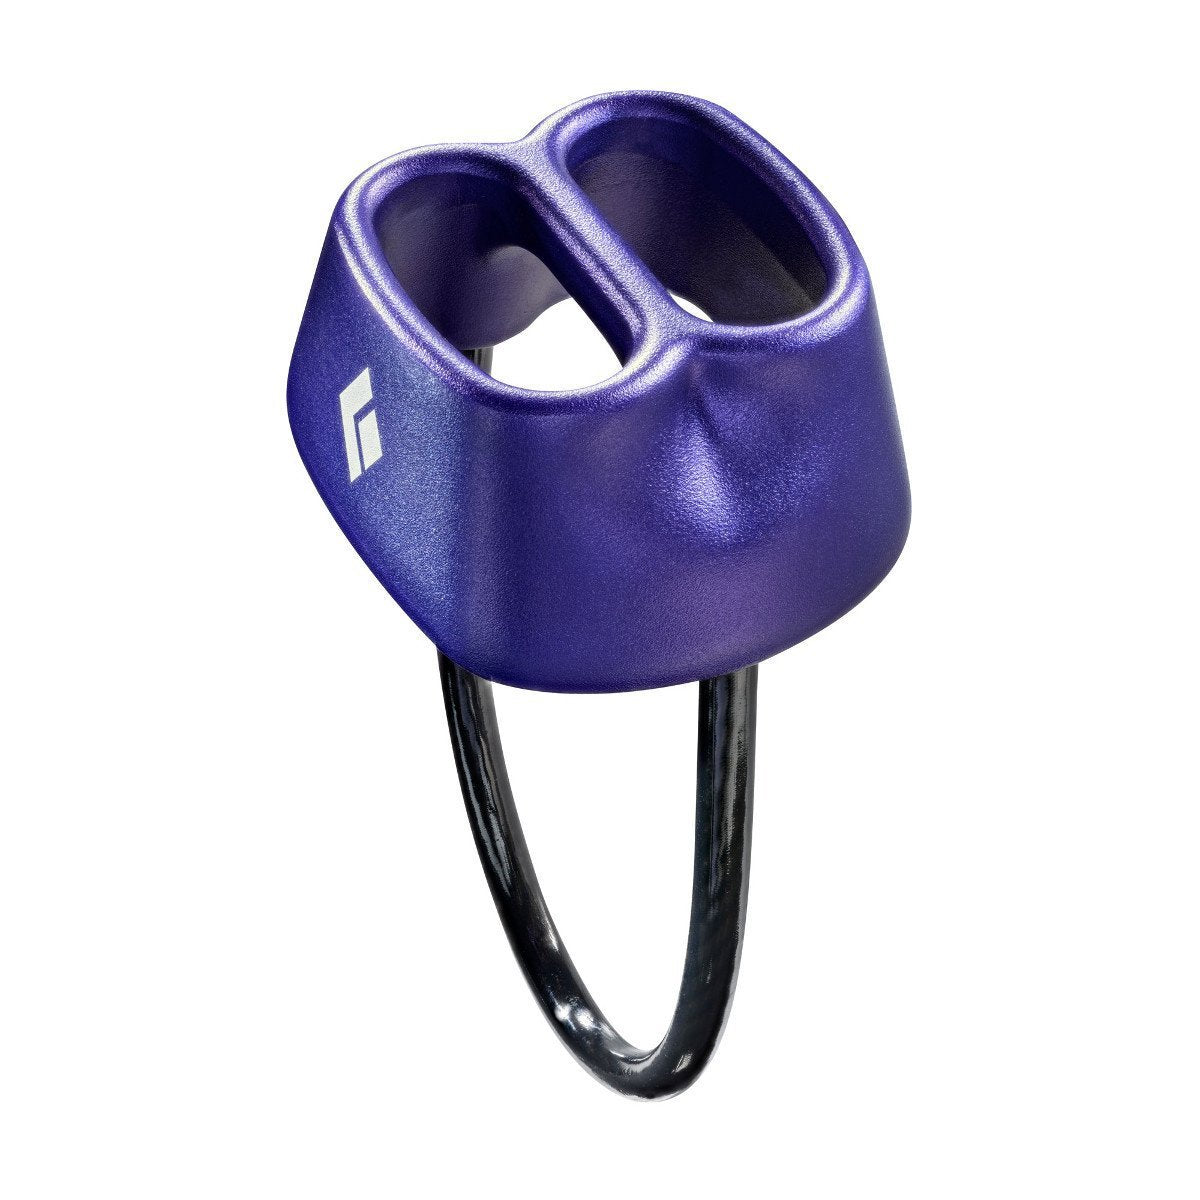 Black Diamond ATC belay device, in purple colour